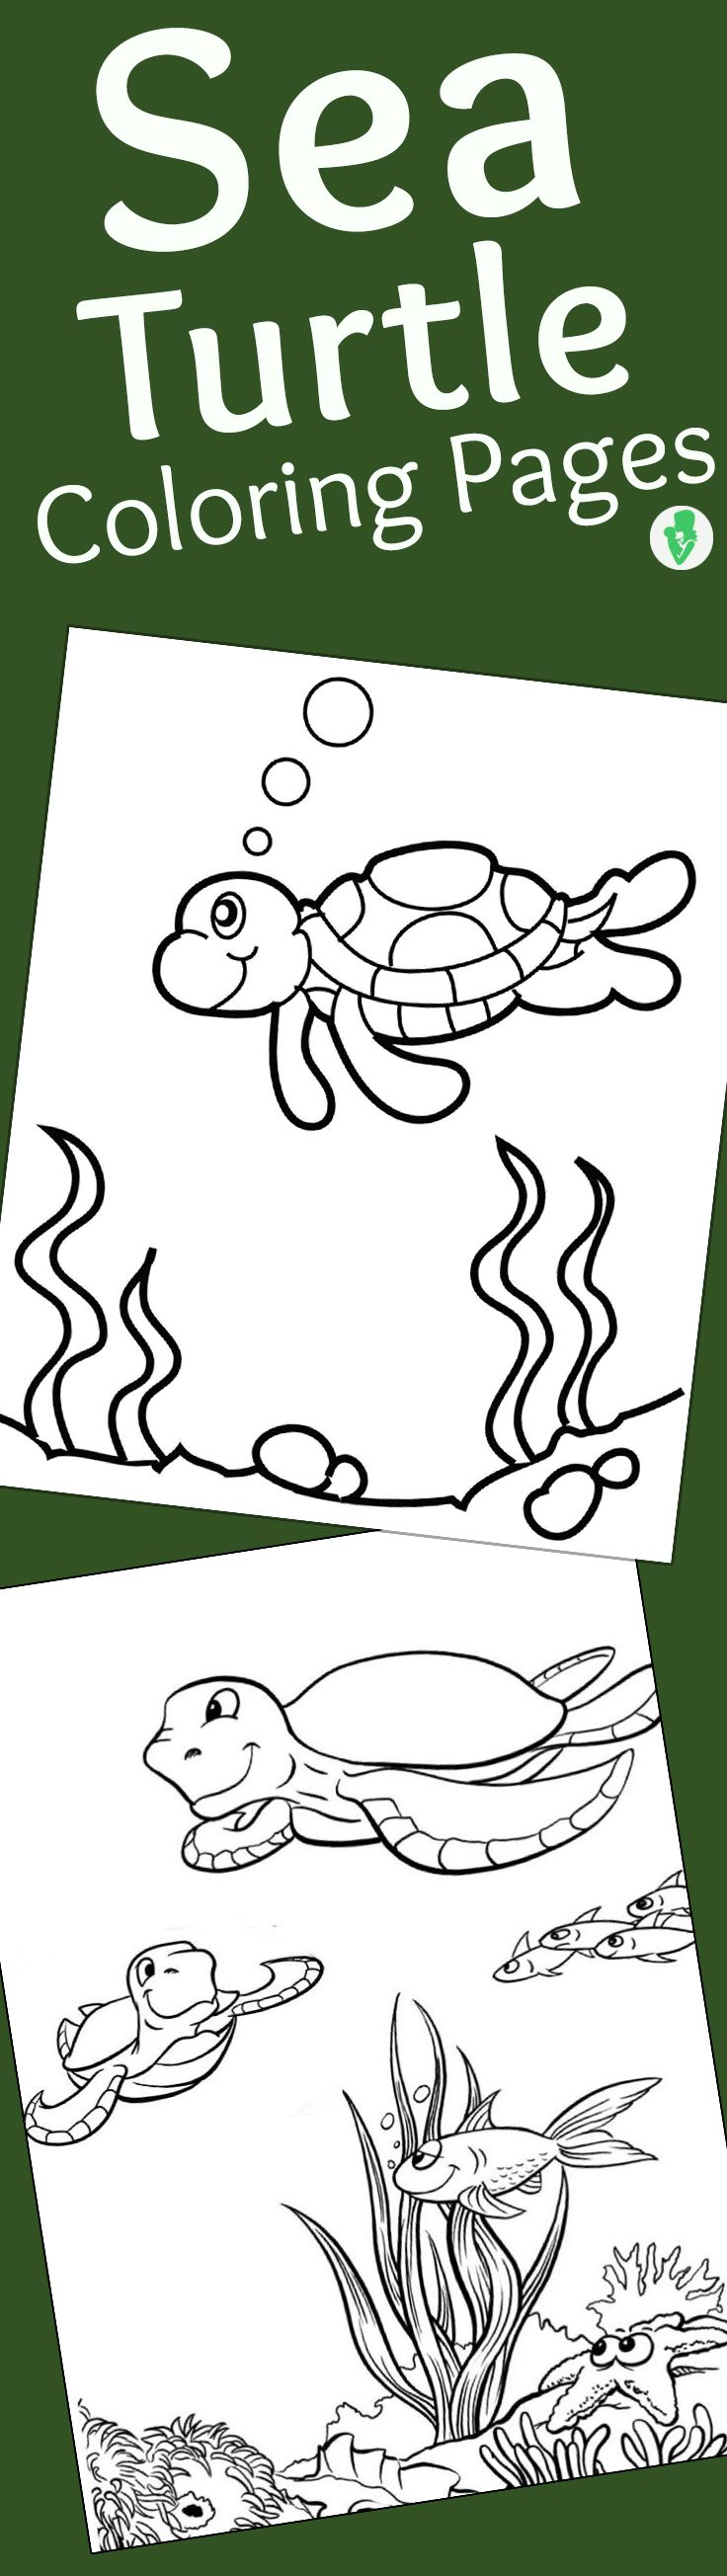 Top 10 Free Printable Cute Sea Turtle Coloring Pages Online | Turtle ...